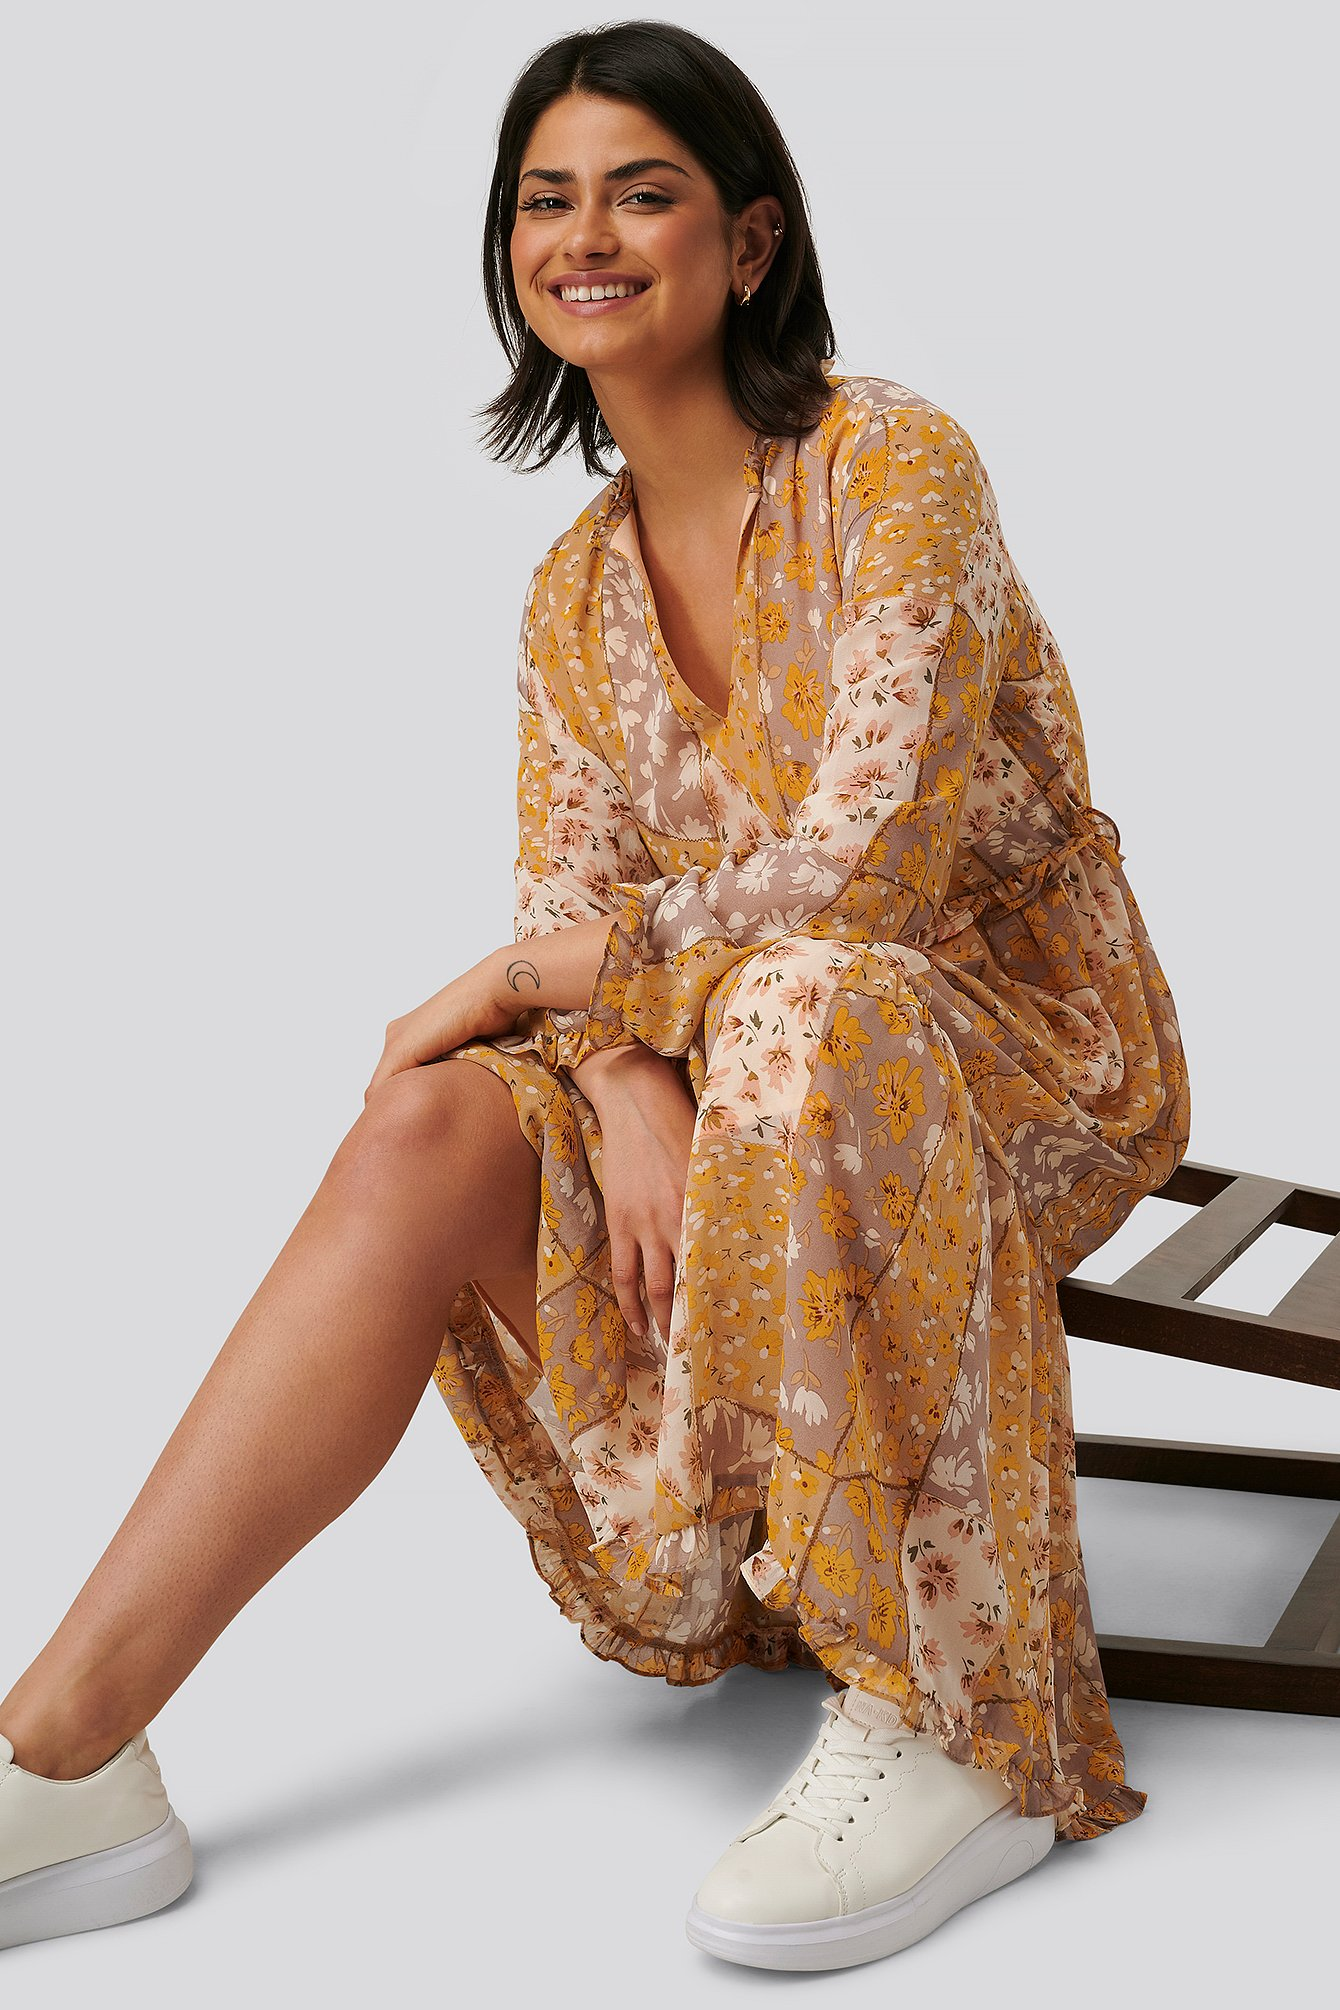 Mixed Flower Branches Yellow V-Neck Flower Print Chiffon Dress